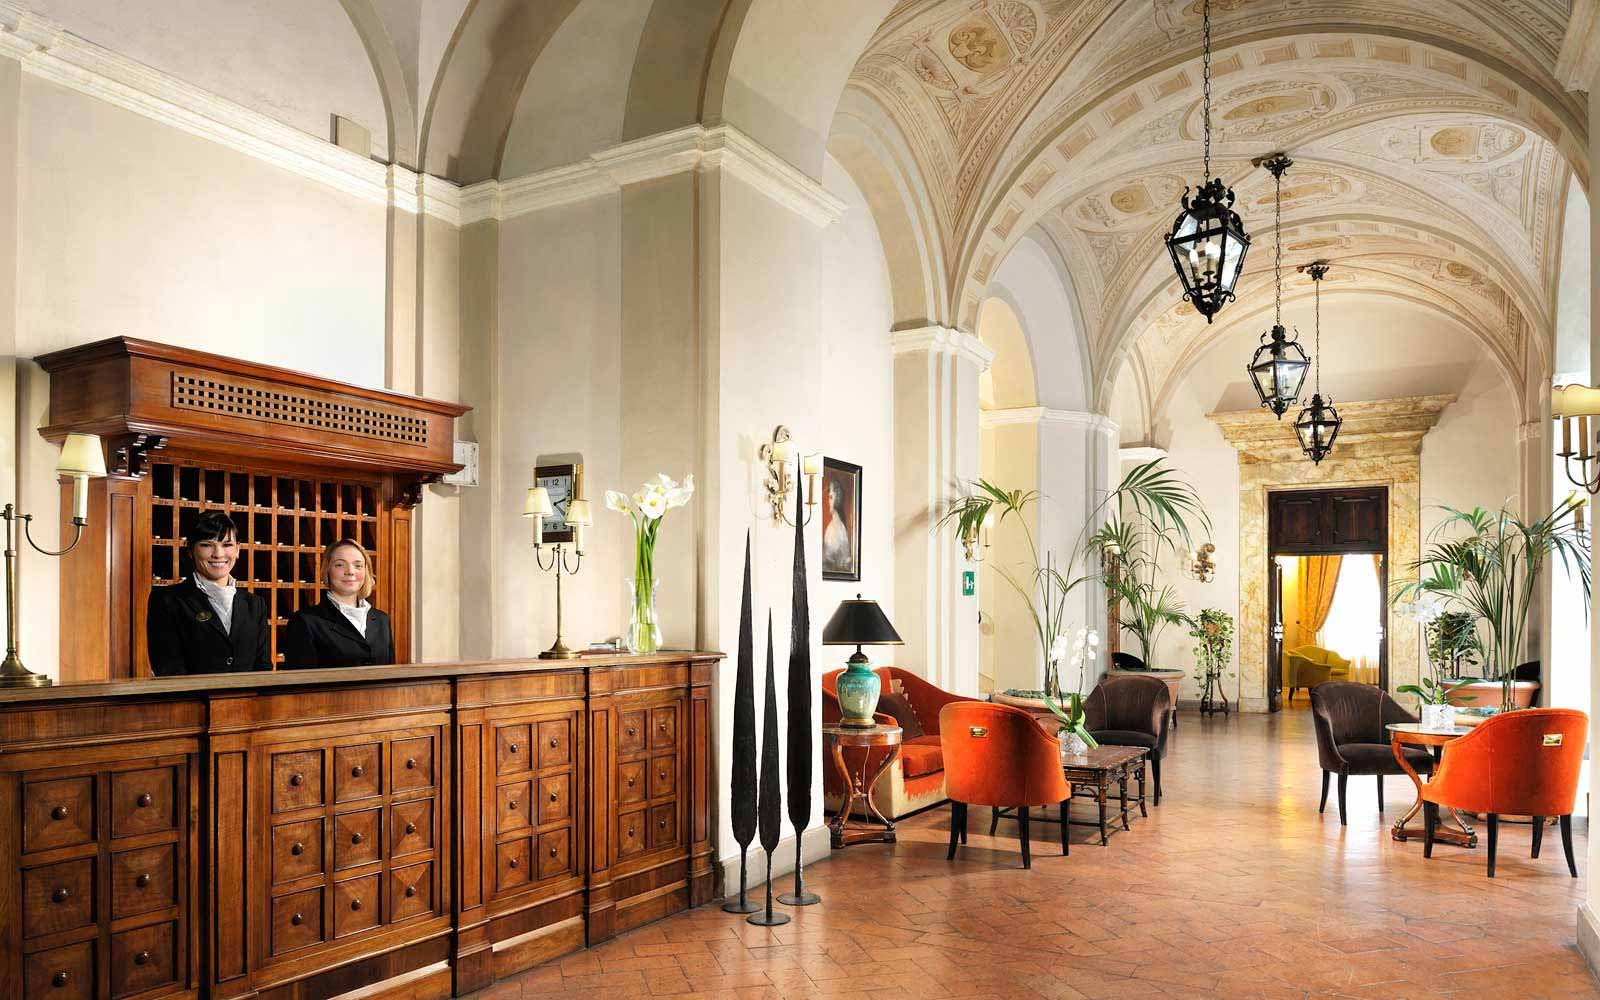 Reception at the Grand Hotel Continental